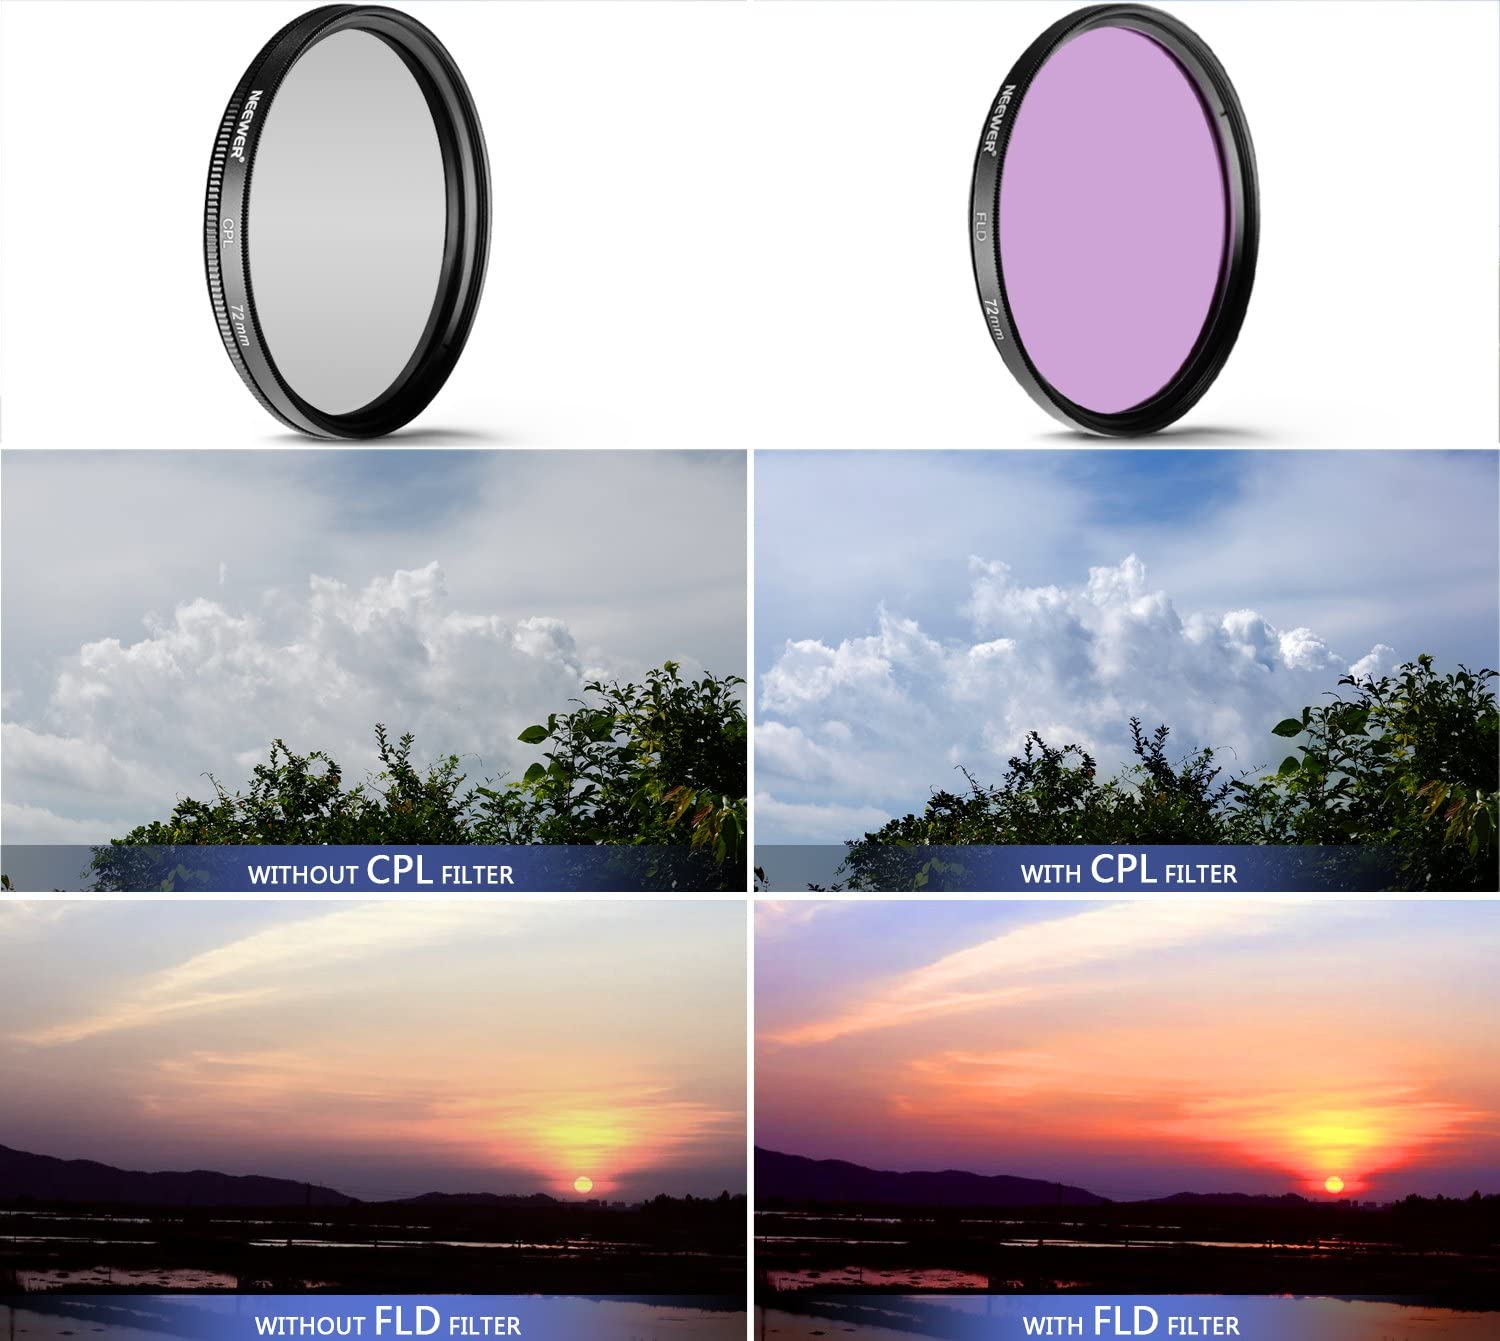 Neewer 72MM Professional UV CPL FLD Lens Filter and Close-up Accessory Kit for Lenses with a 72mm Filter Size +1, 2, 4, 10